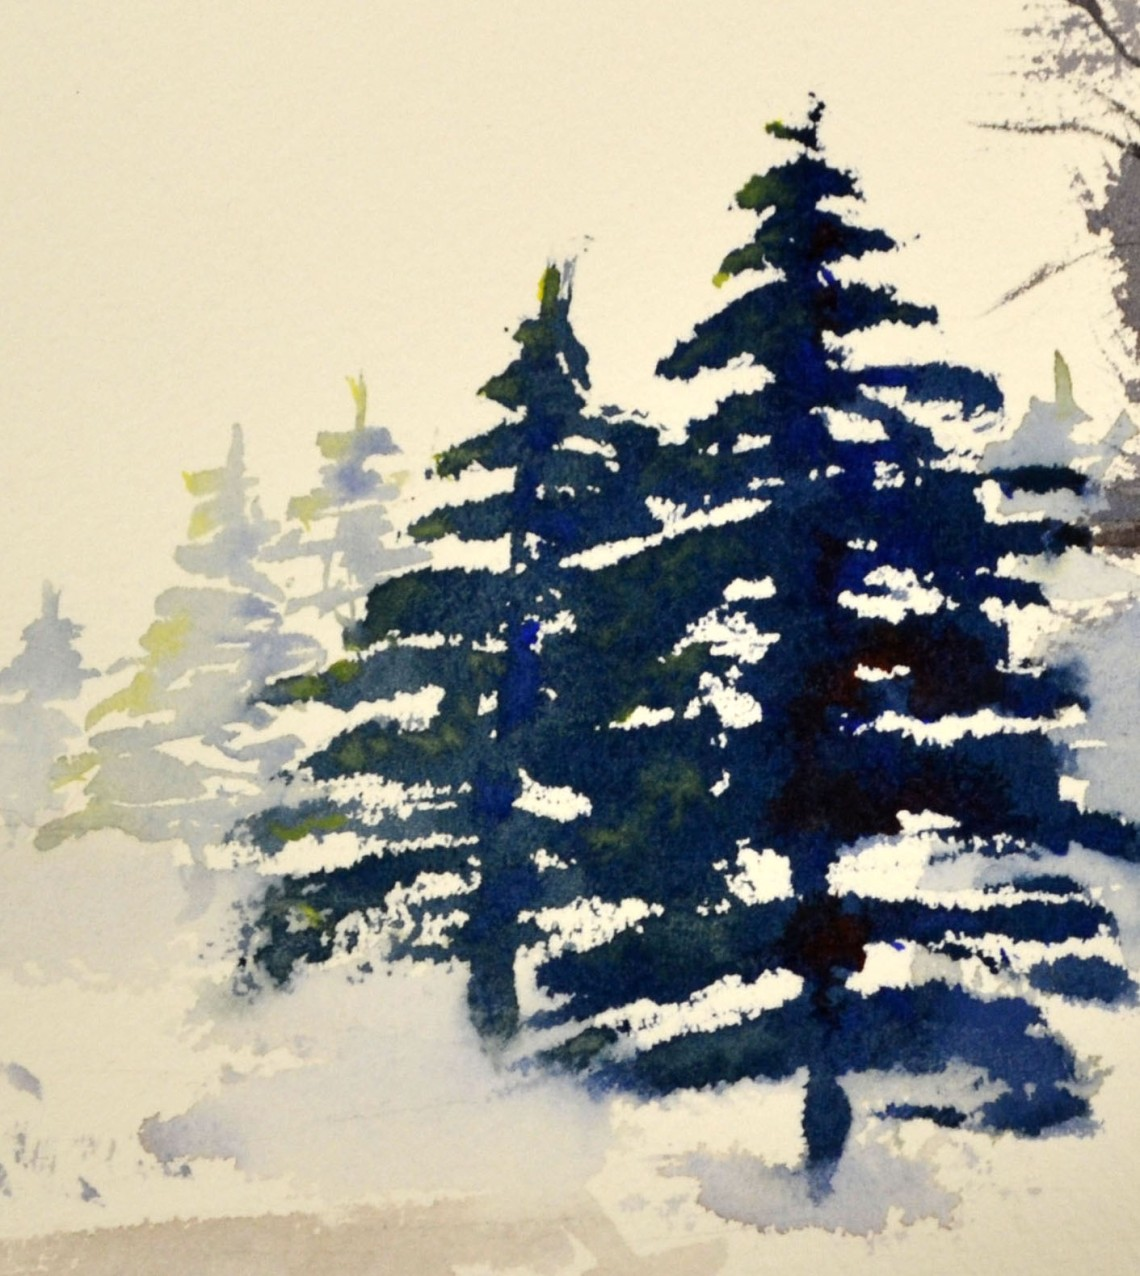 drawn-fir-tree-spruce-tree-9